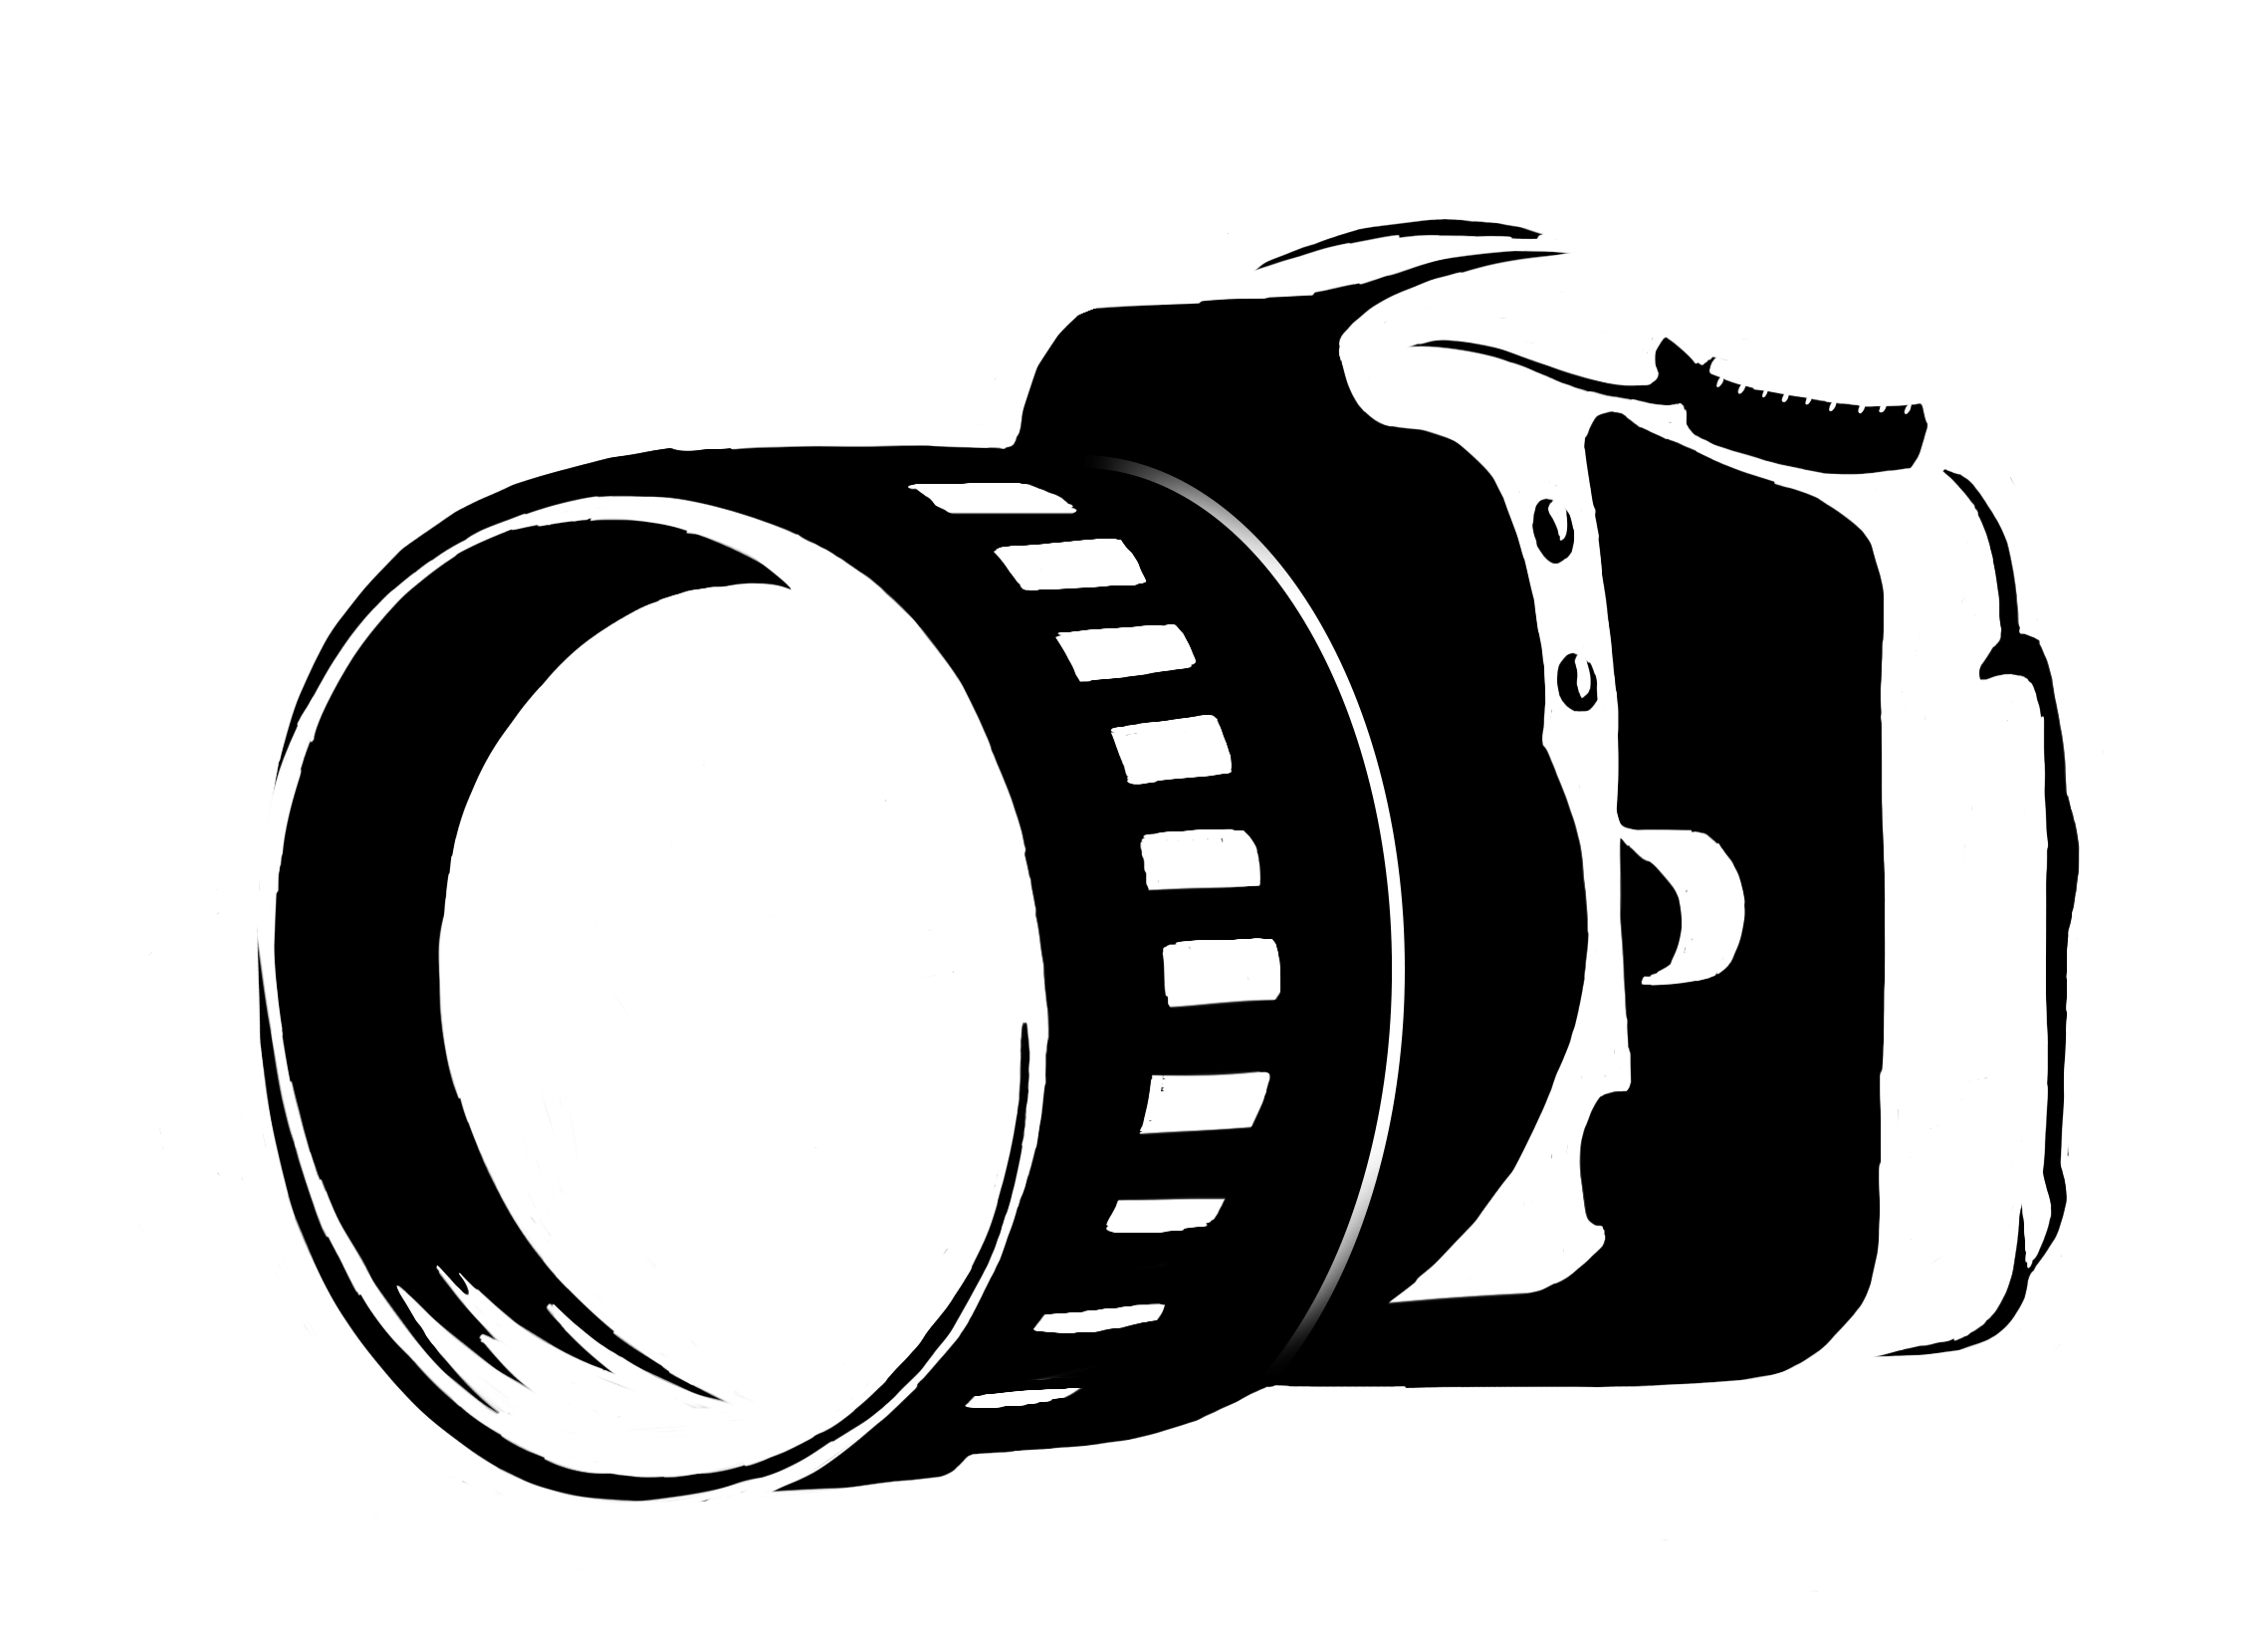 Photography camera logo png. Photoshoot the scenarios throughthelens